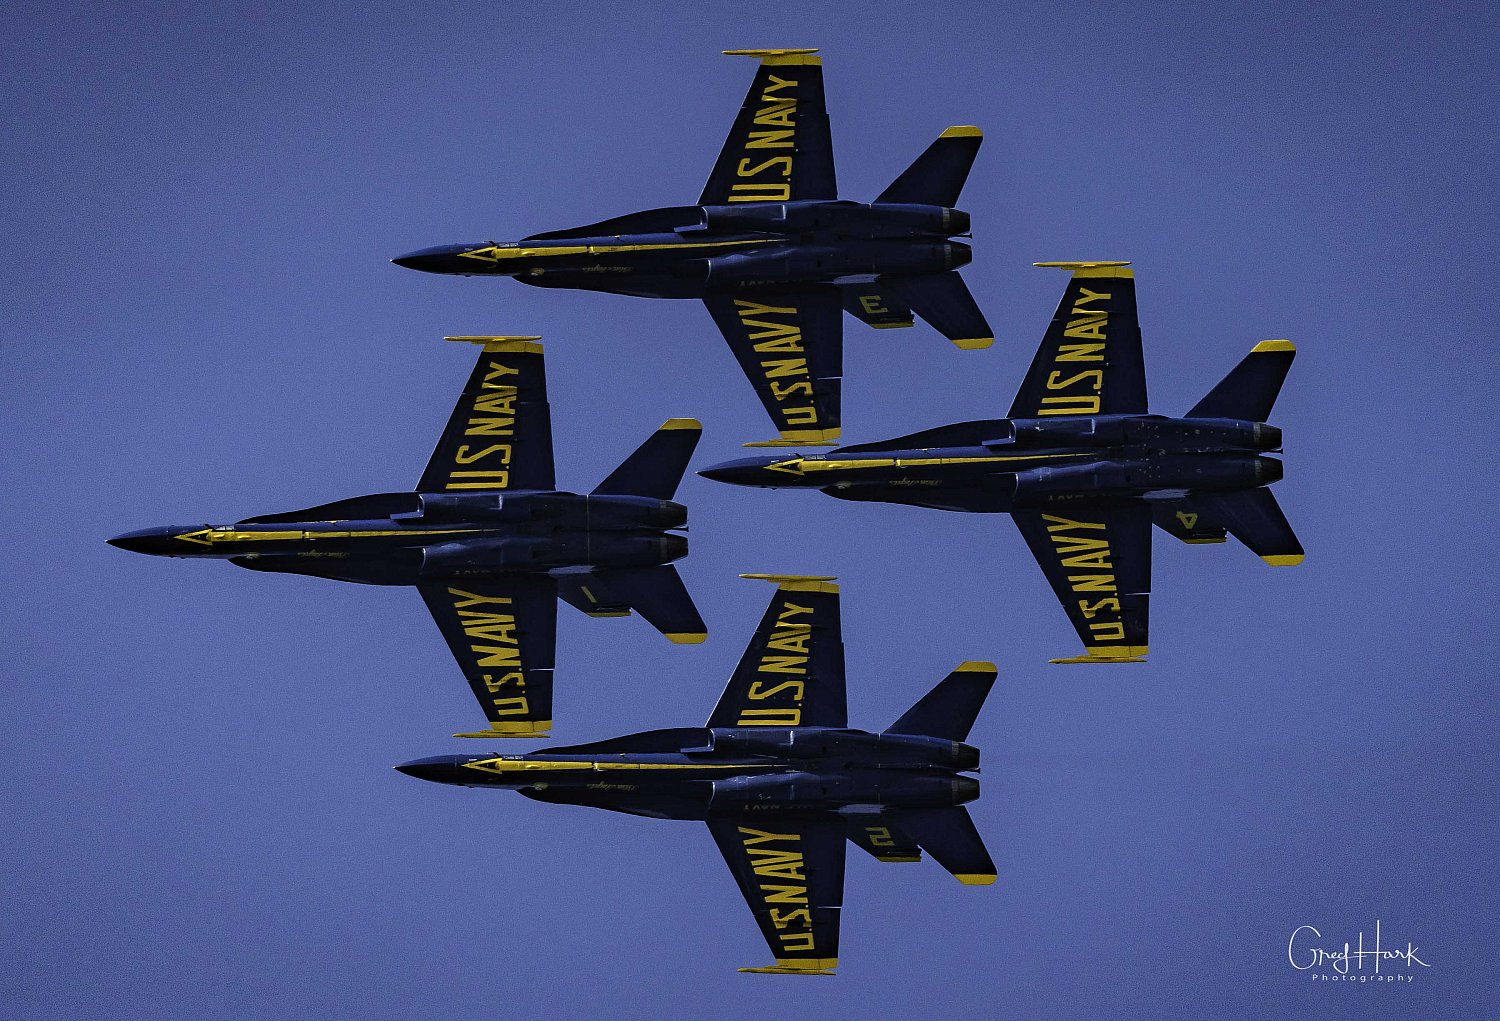 Air Show - San Francisco California5,